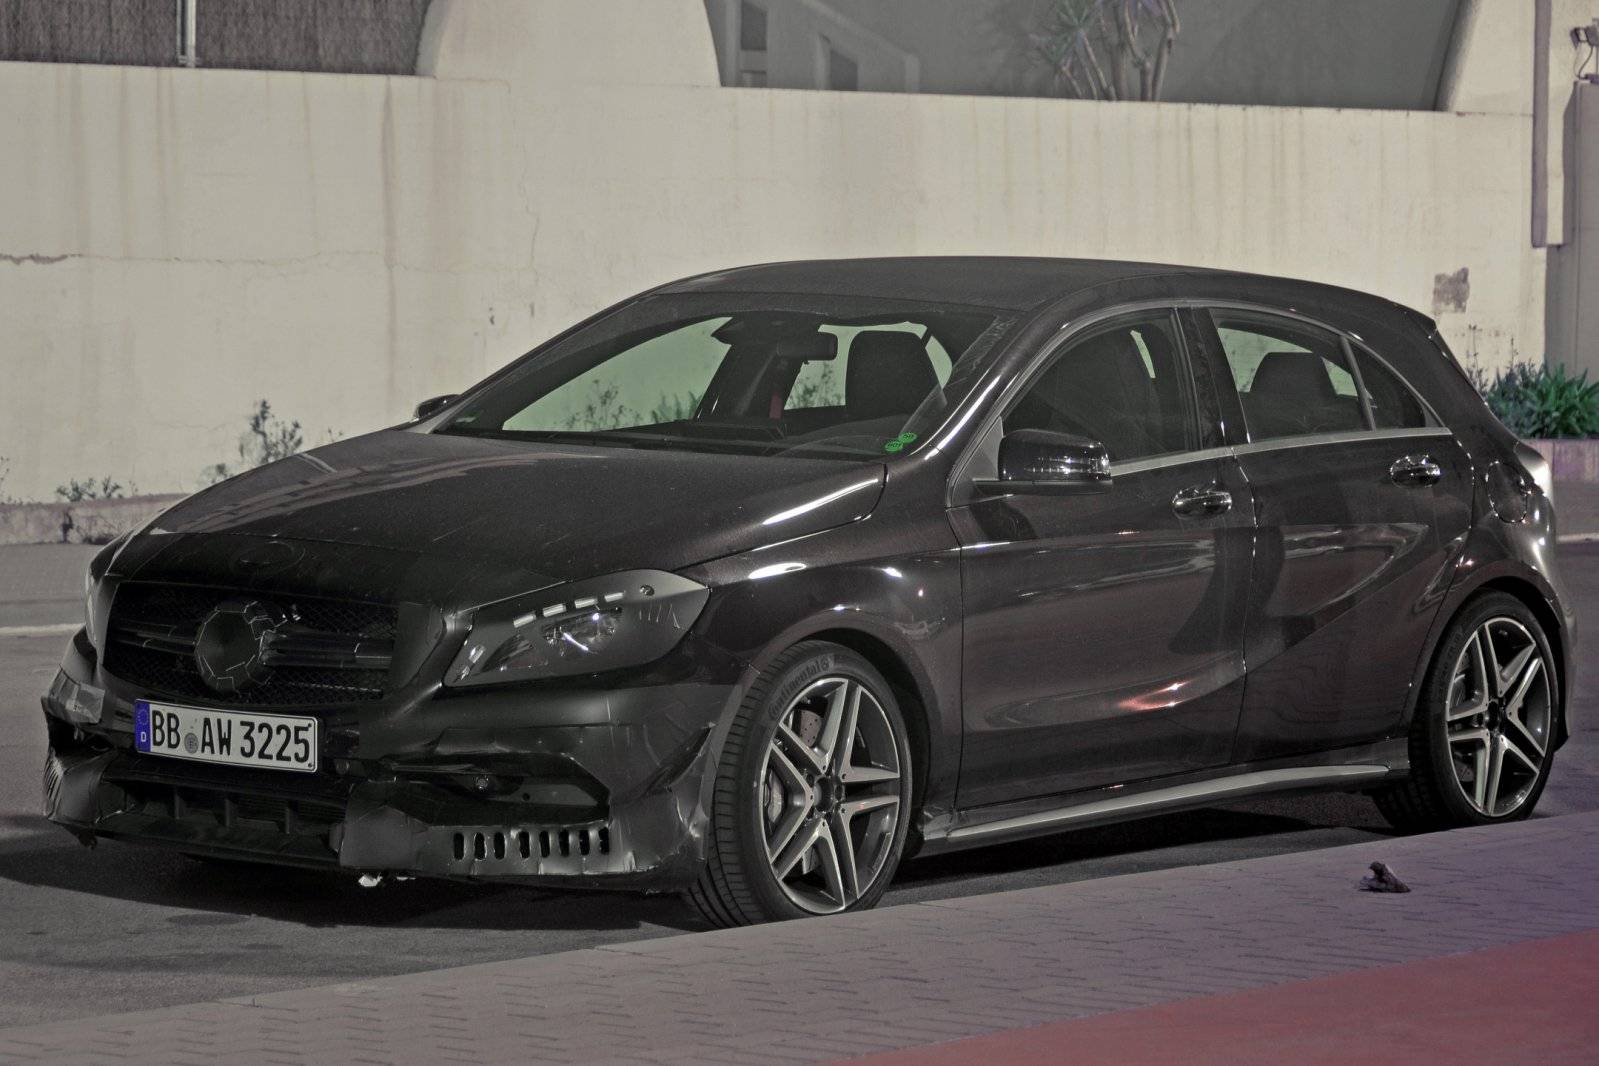 gefacelifte mercedes a 45 amg weer de sterkste spyshots. Black Bedroom Furniture Sets. Home Design Ideas